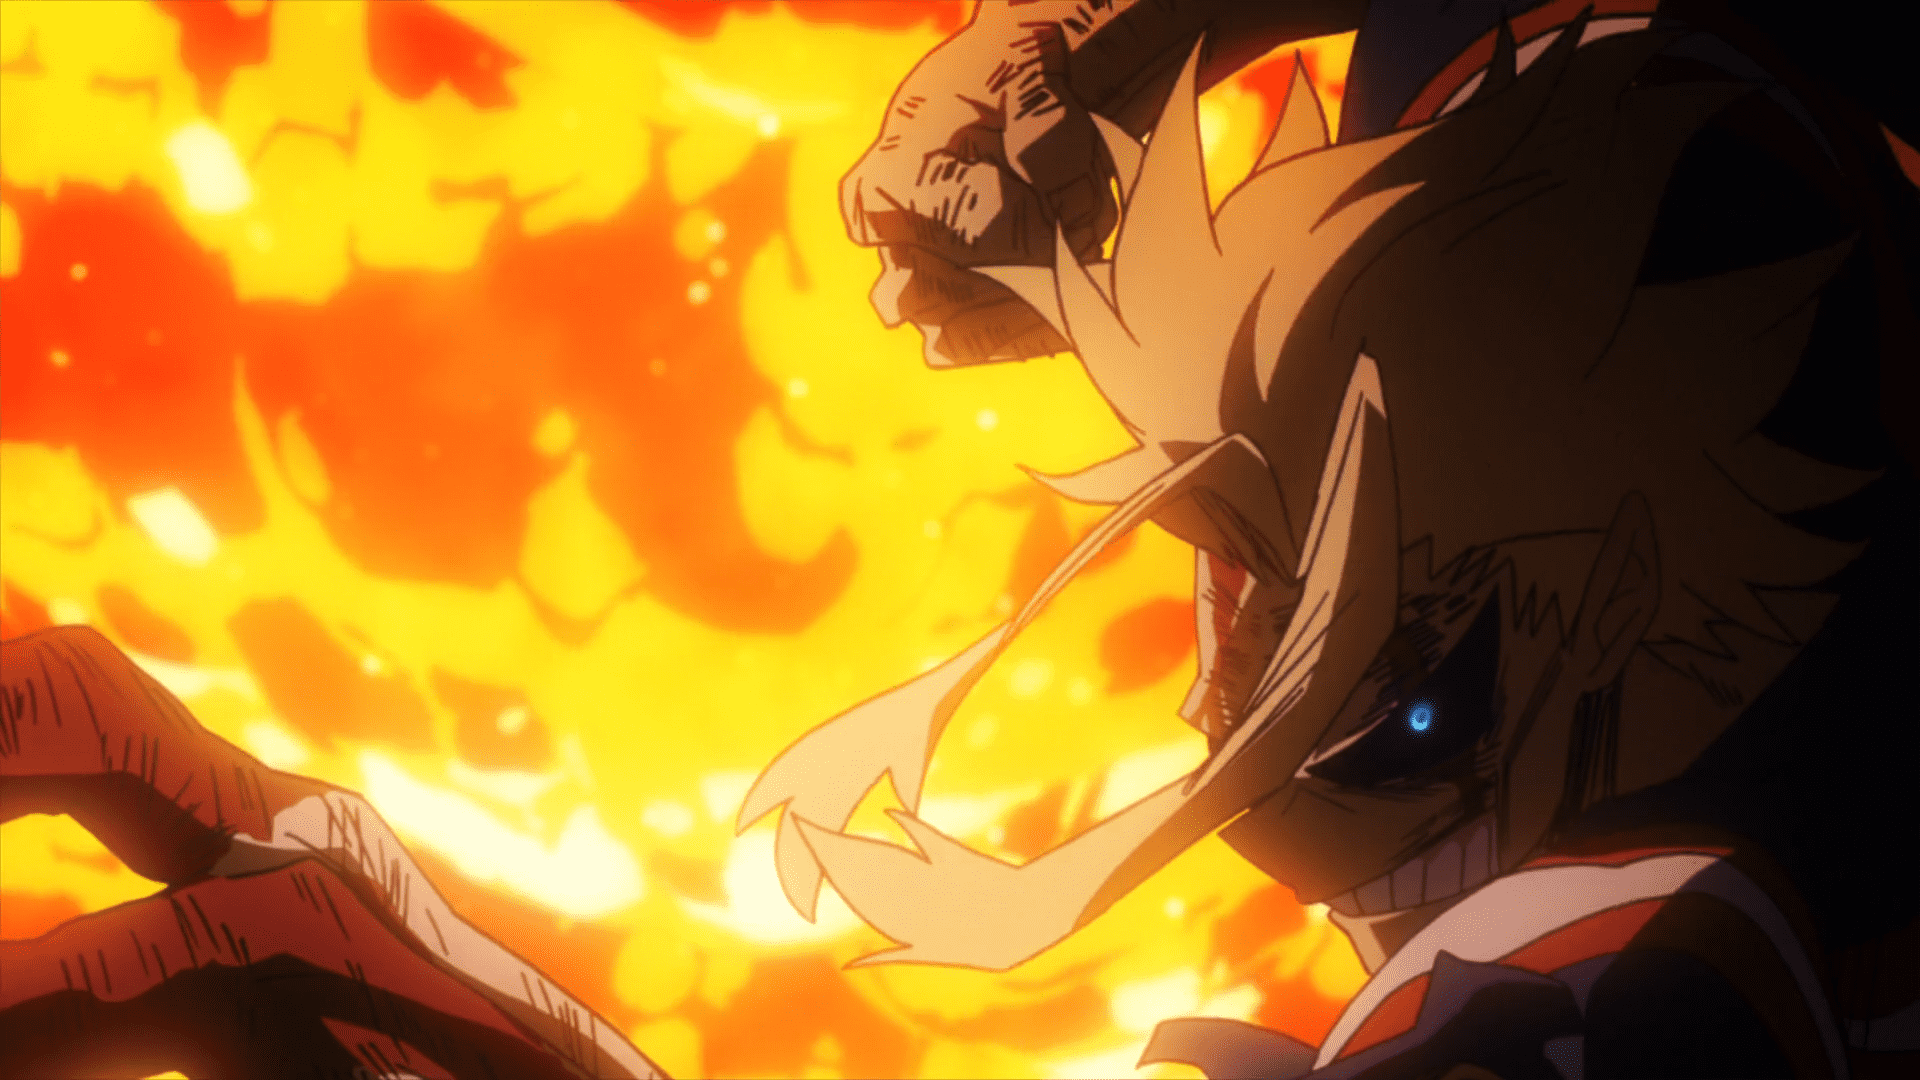 All Might United States of Smash